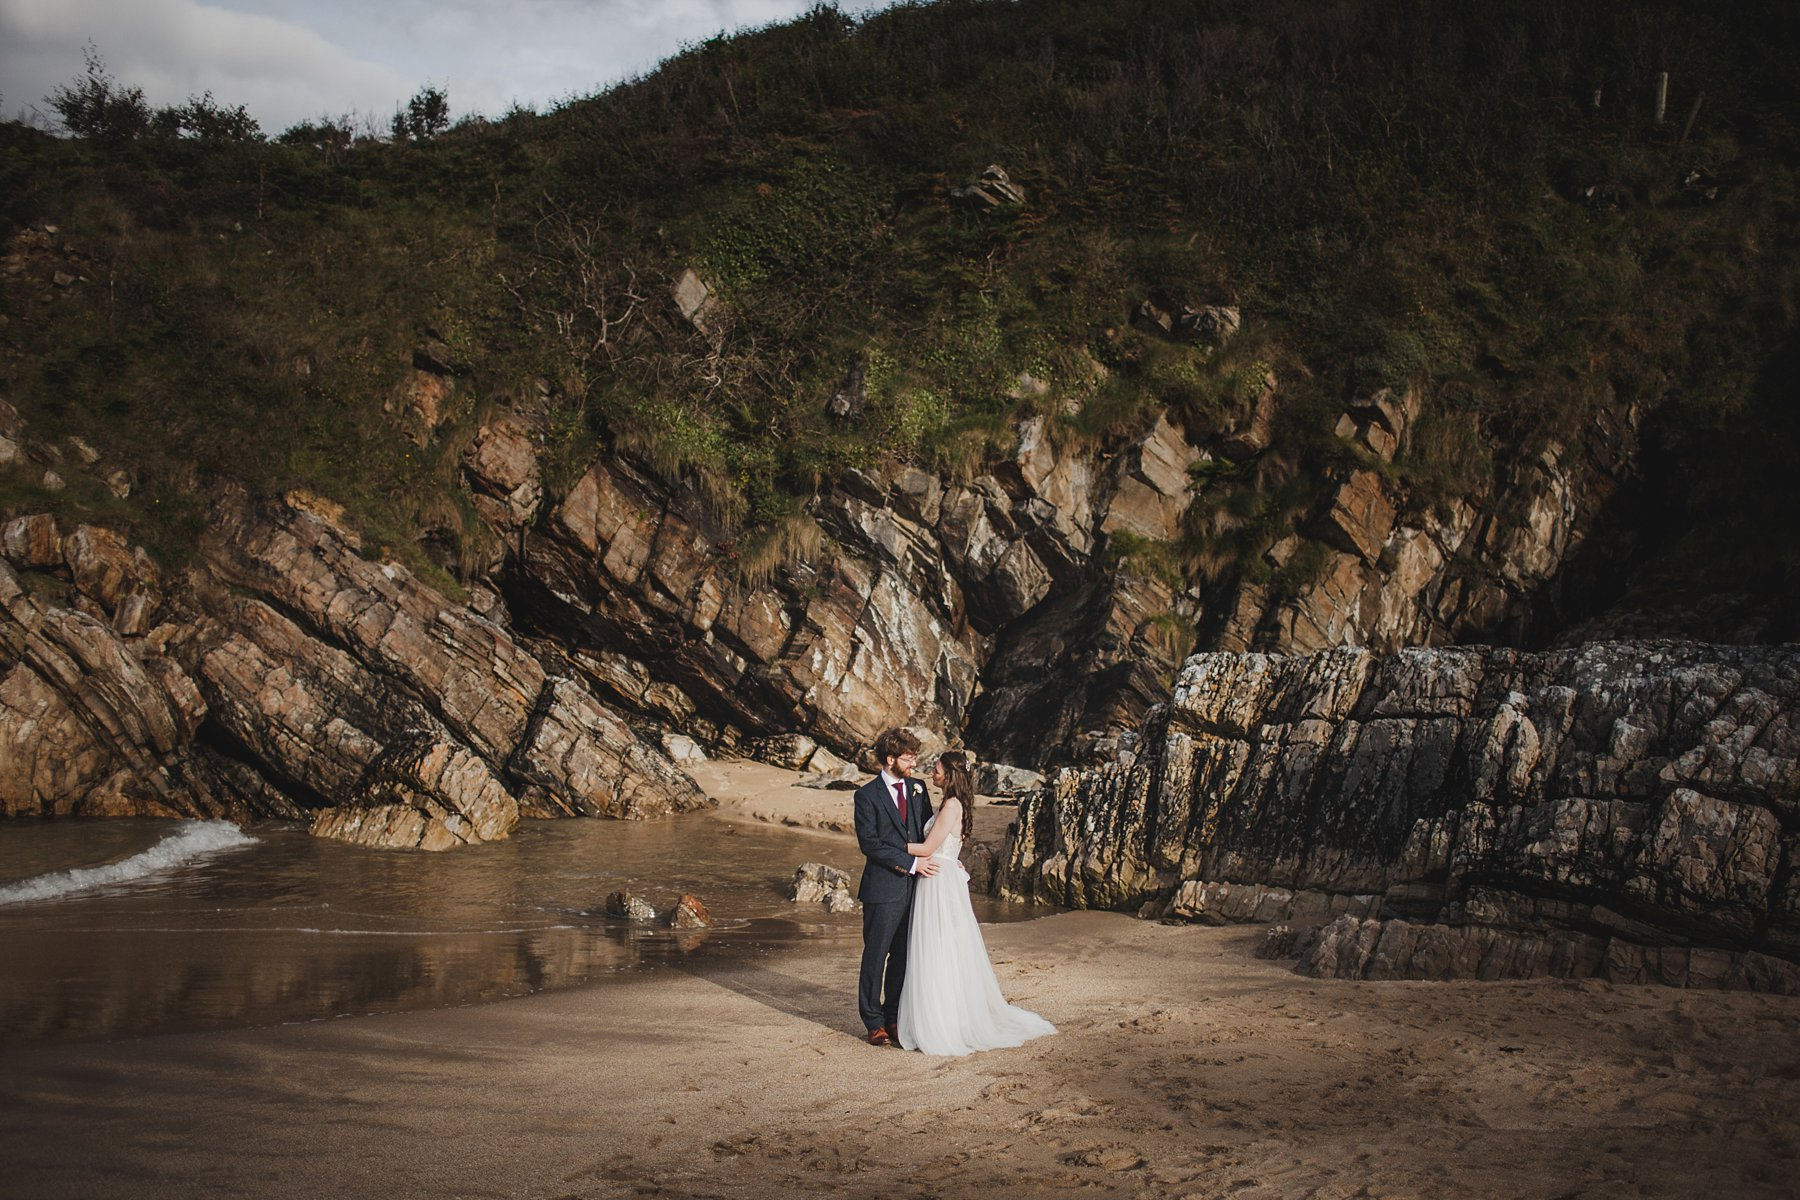 hornhead_donegak_elopement_weddings_0070